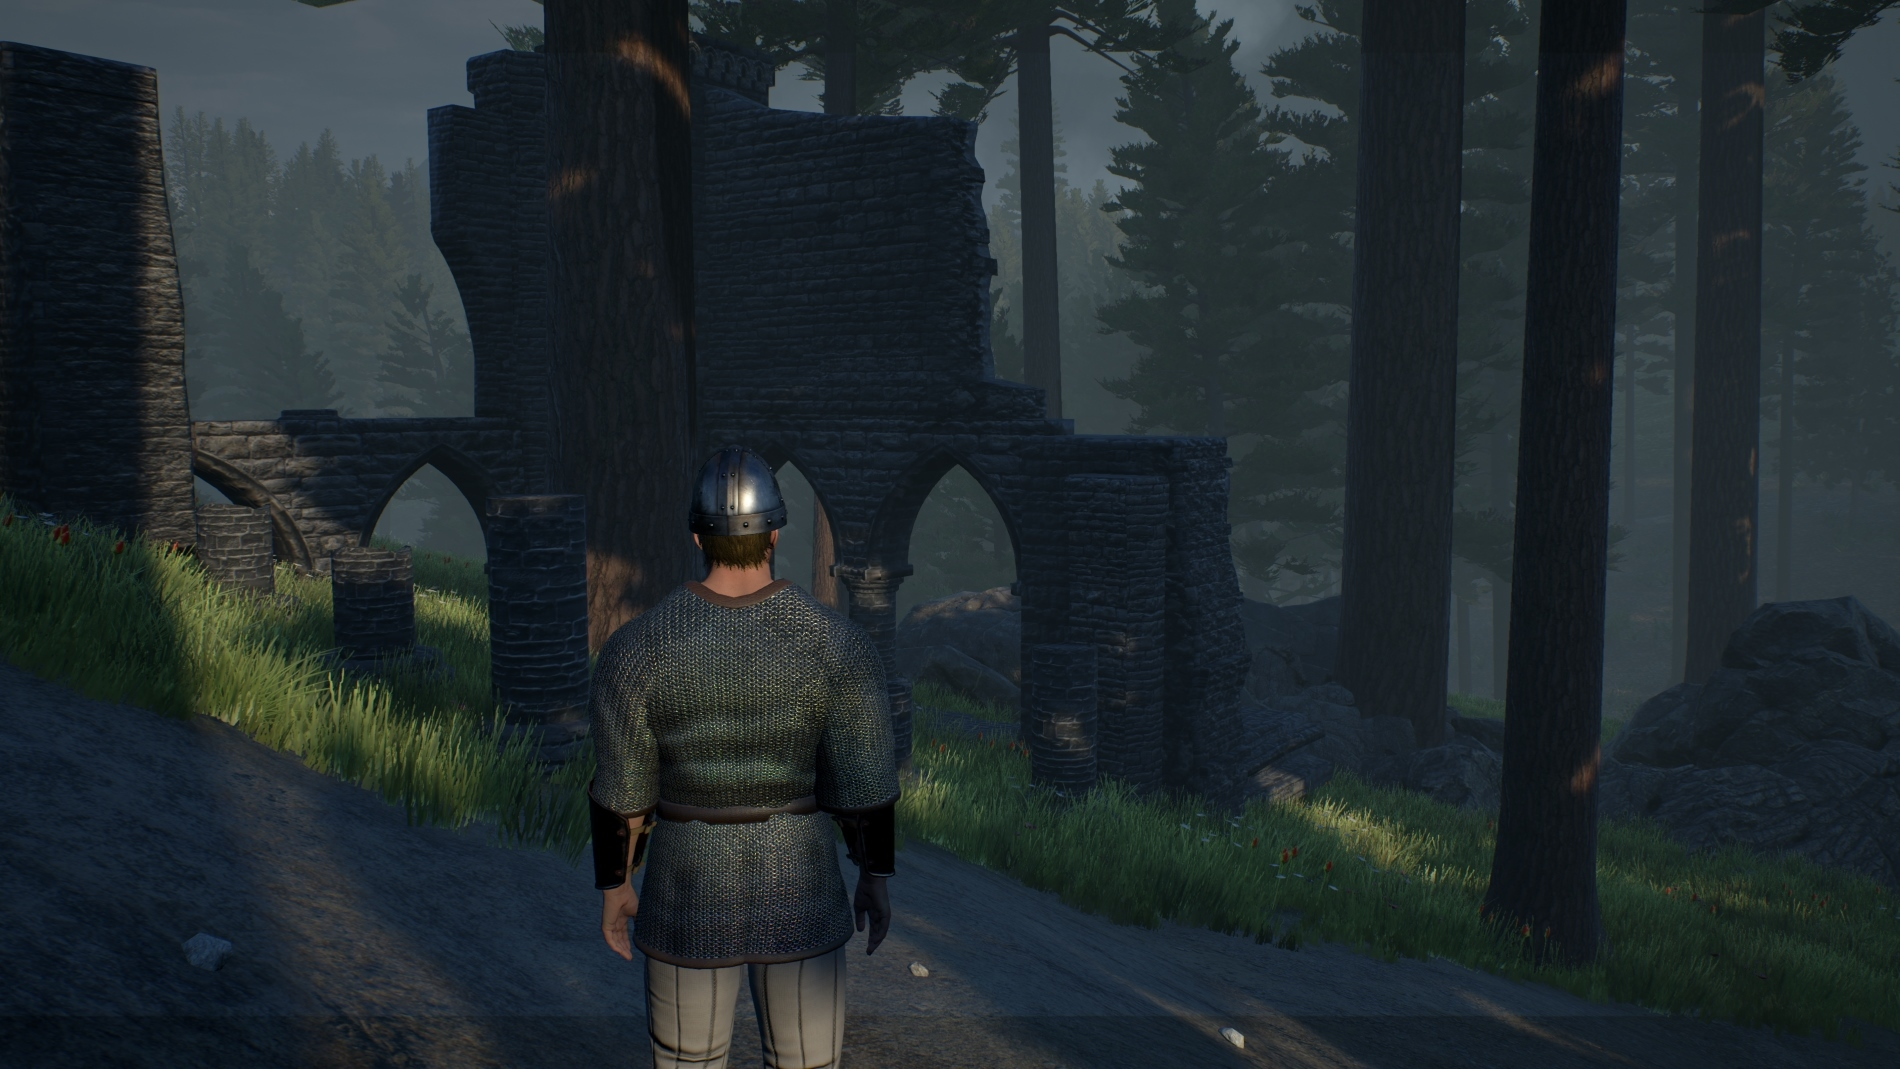 Tosker encounters a ruin after reaching the road to New Haven